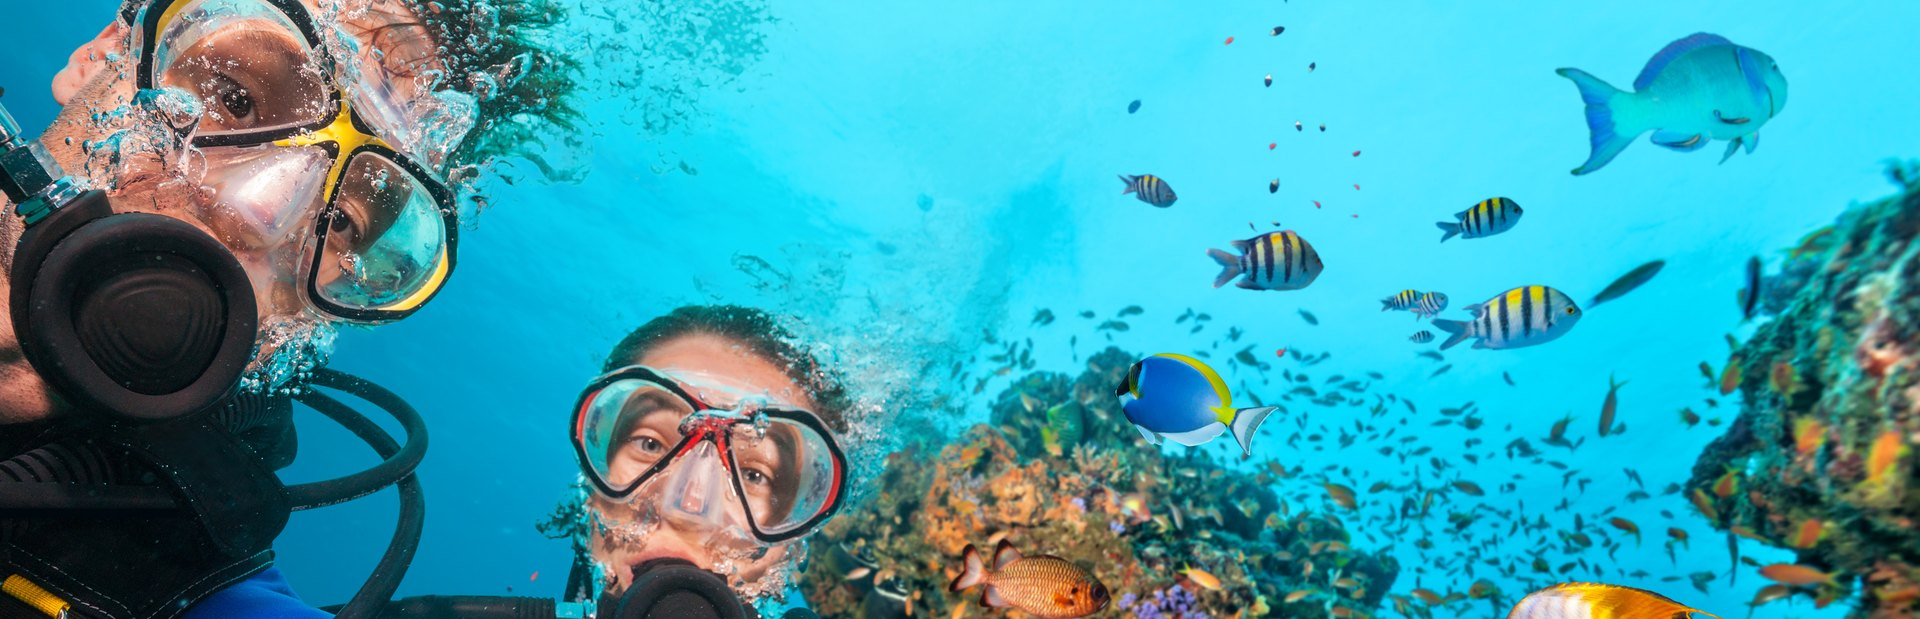 Things to see & do in the Maldives